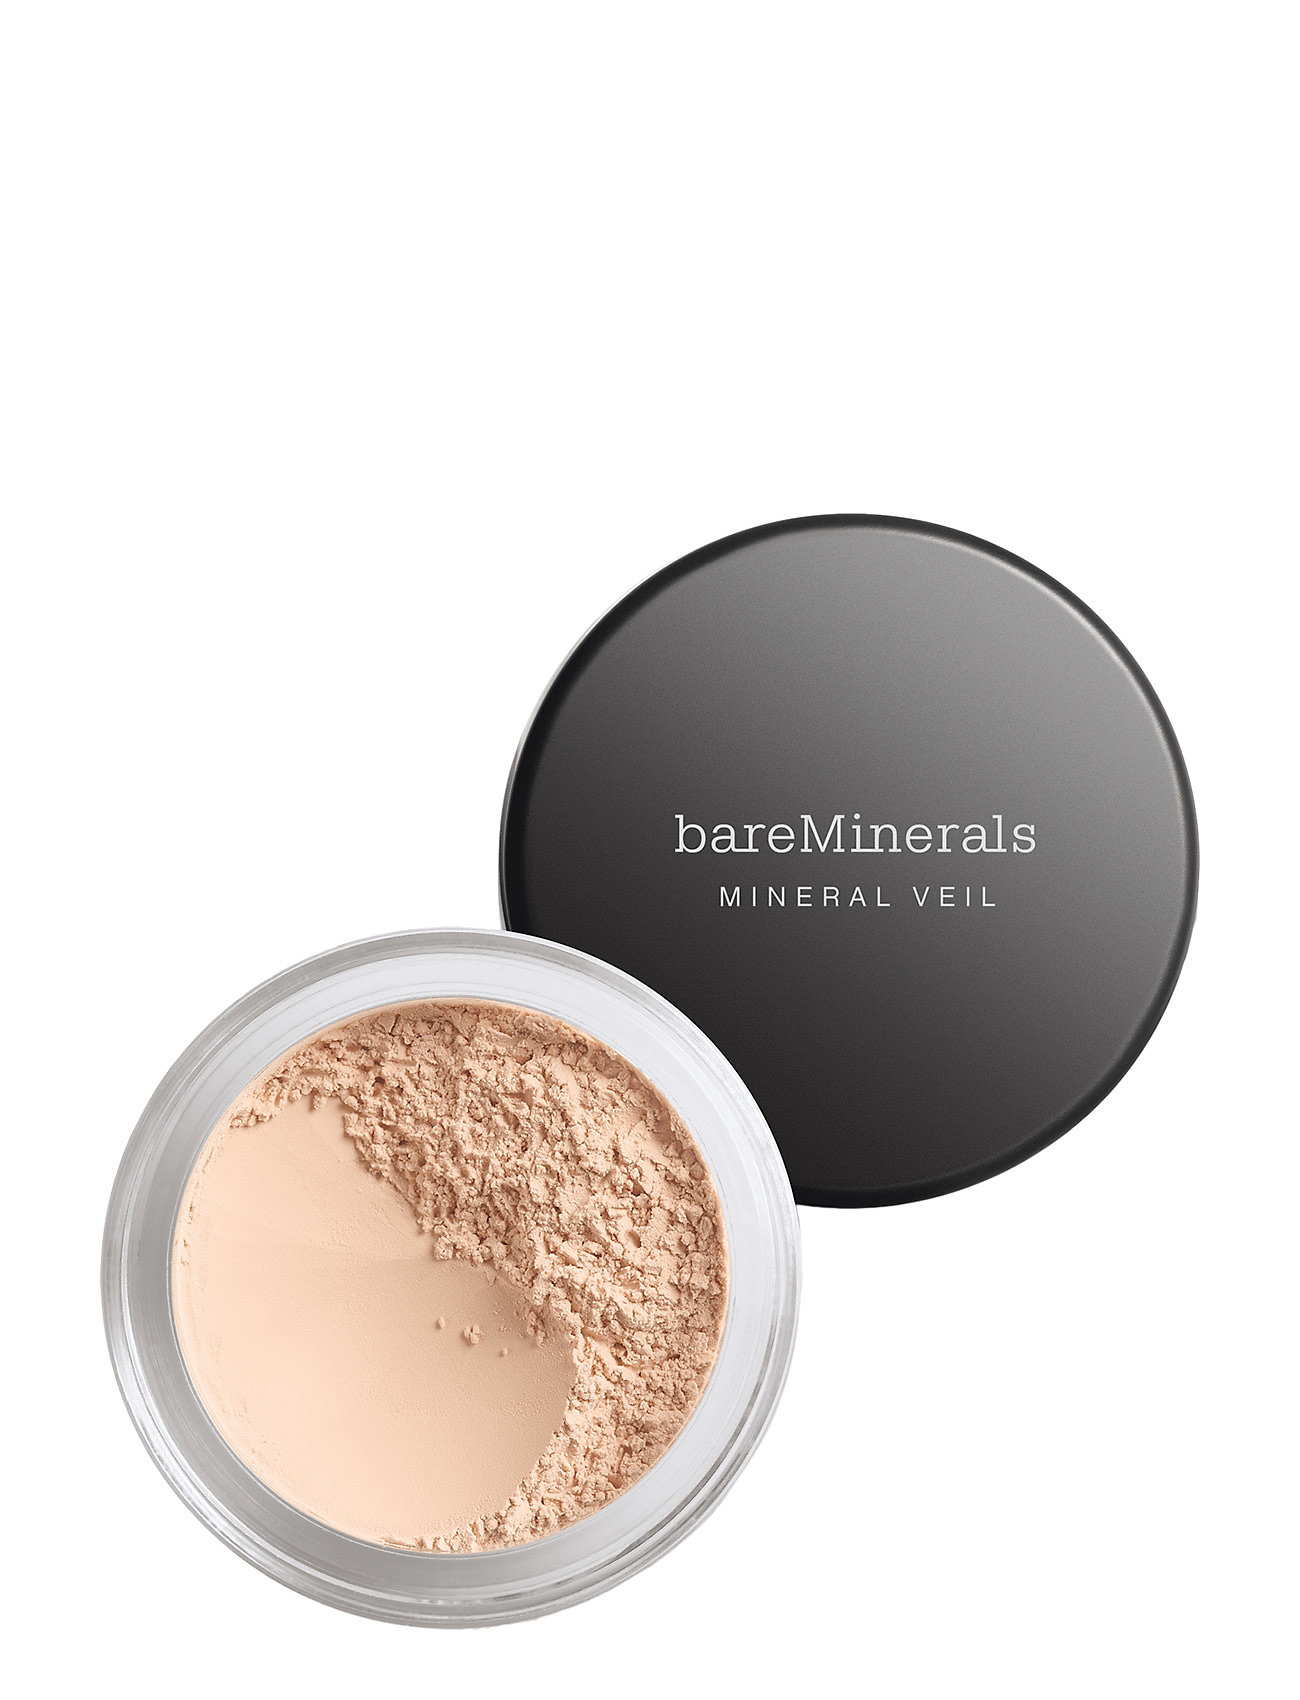 Image of Mineral Veil Pudder Makeup BareMinerals (3406150255)